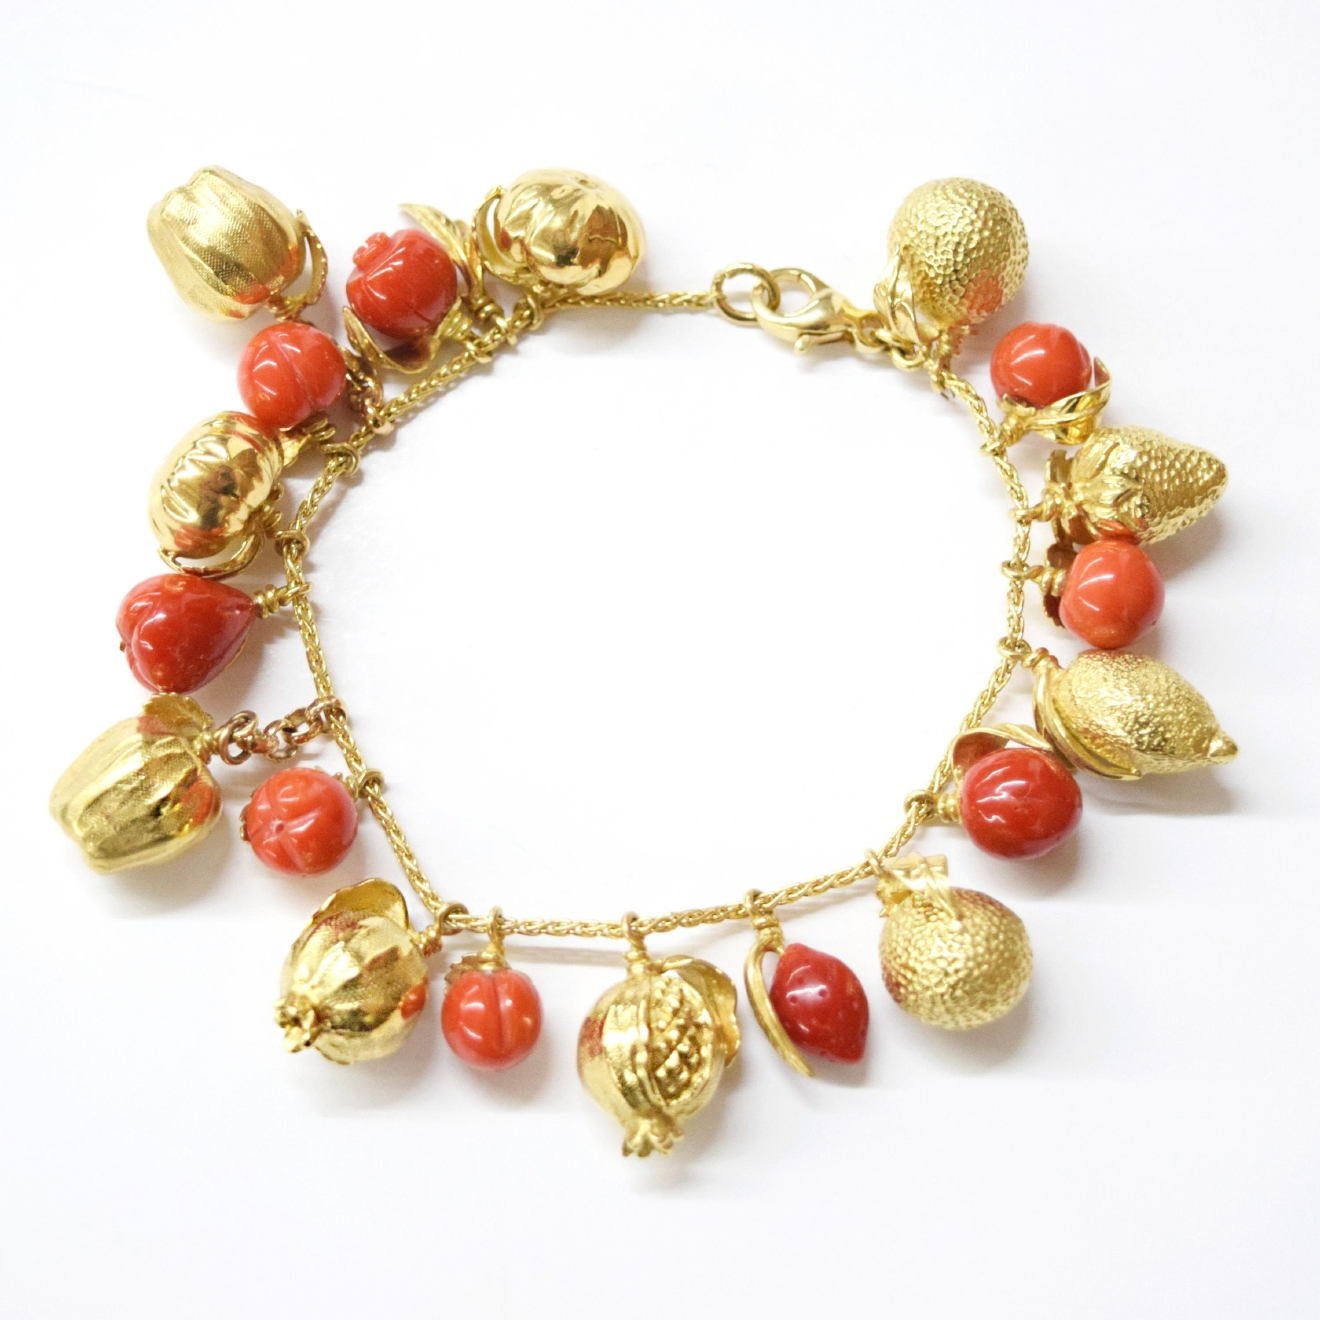 Argentine 18K and Coral Bracelet with Fruit Charms / Image courtesy of Everything But The House // Published: 10.15.16